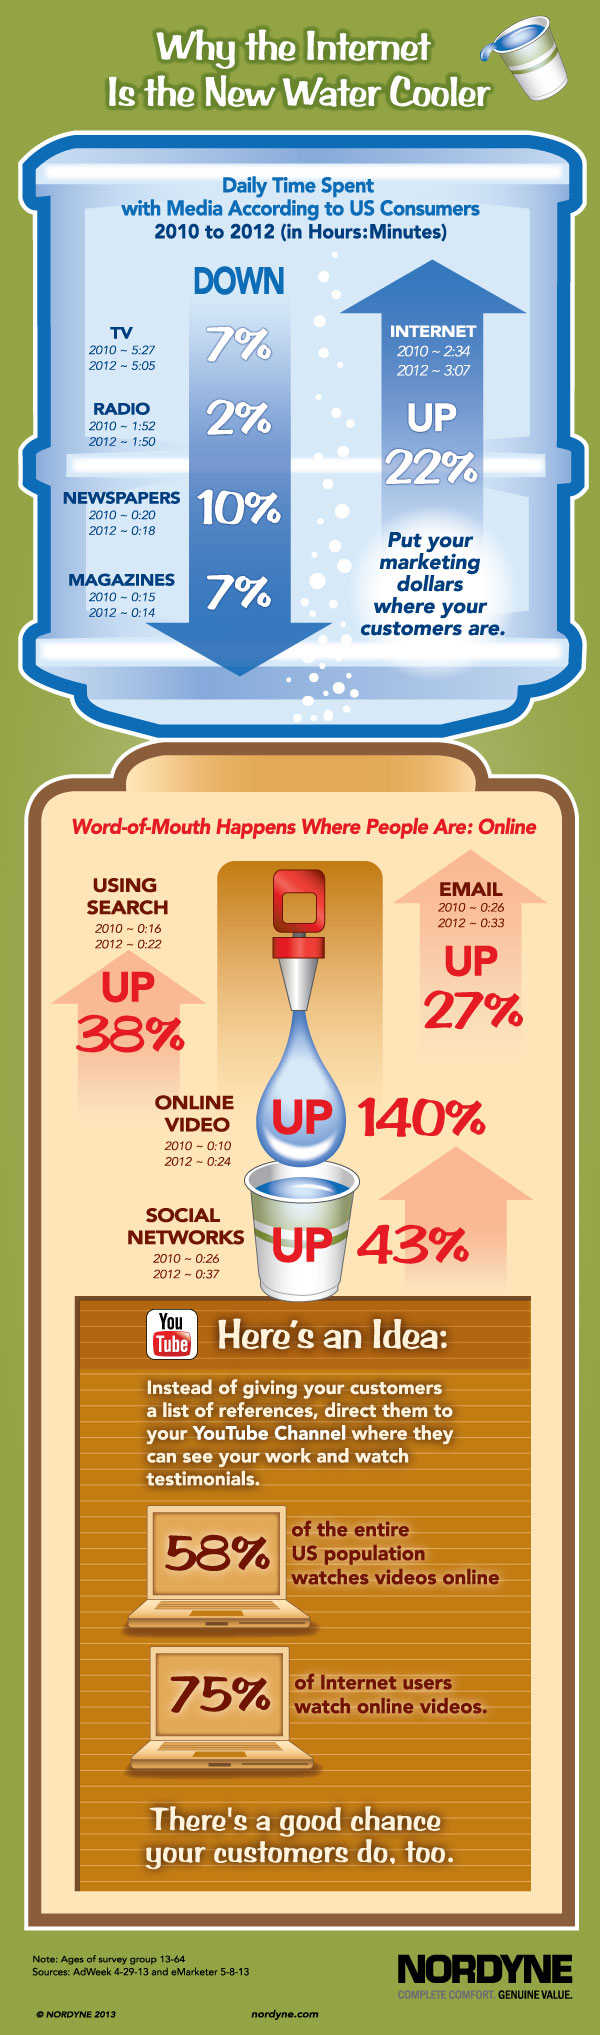 Media Usage by Consumers Infographic